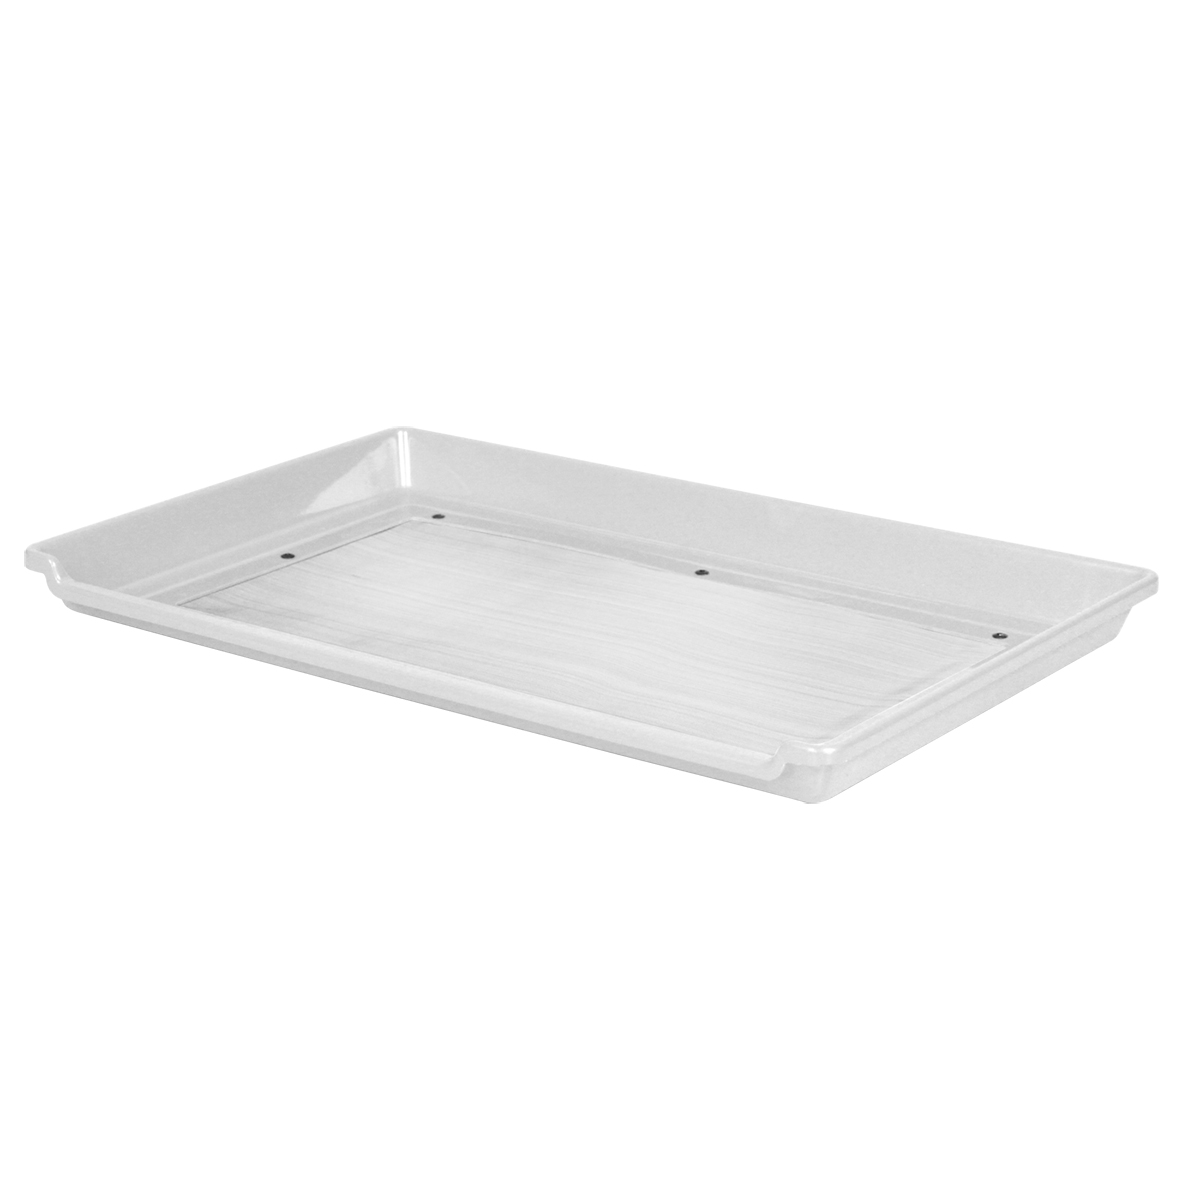 Trim Tray Accessory Top ONLY - 100 Micron